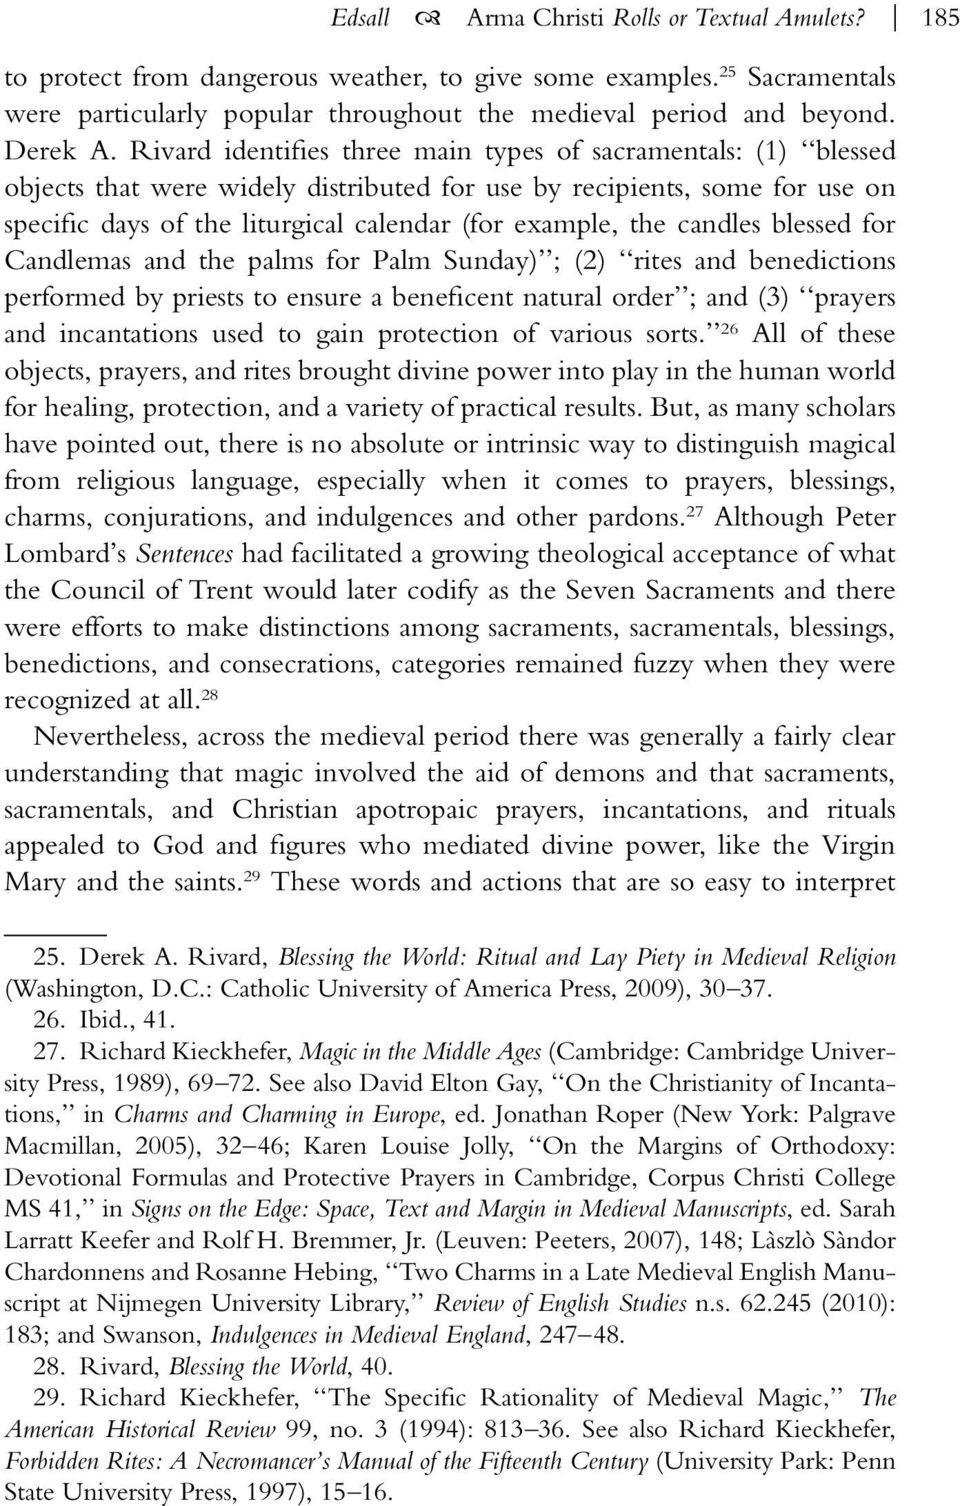 Rivard identifies three main types of sacramentals: (1) blessed objects that were widely distributed for use by recipients, some for use on specific days of the liturgical calendar (for example, the